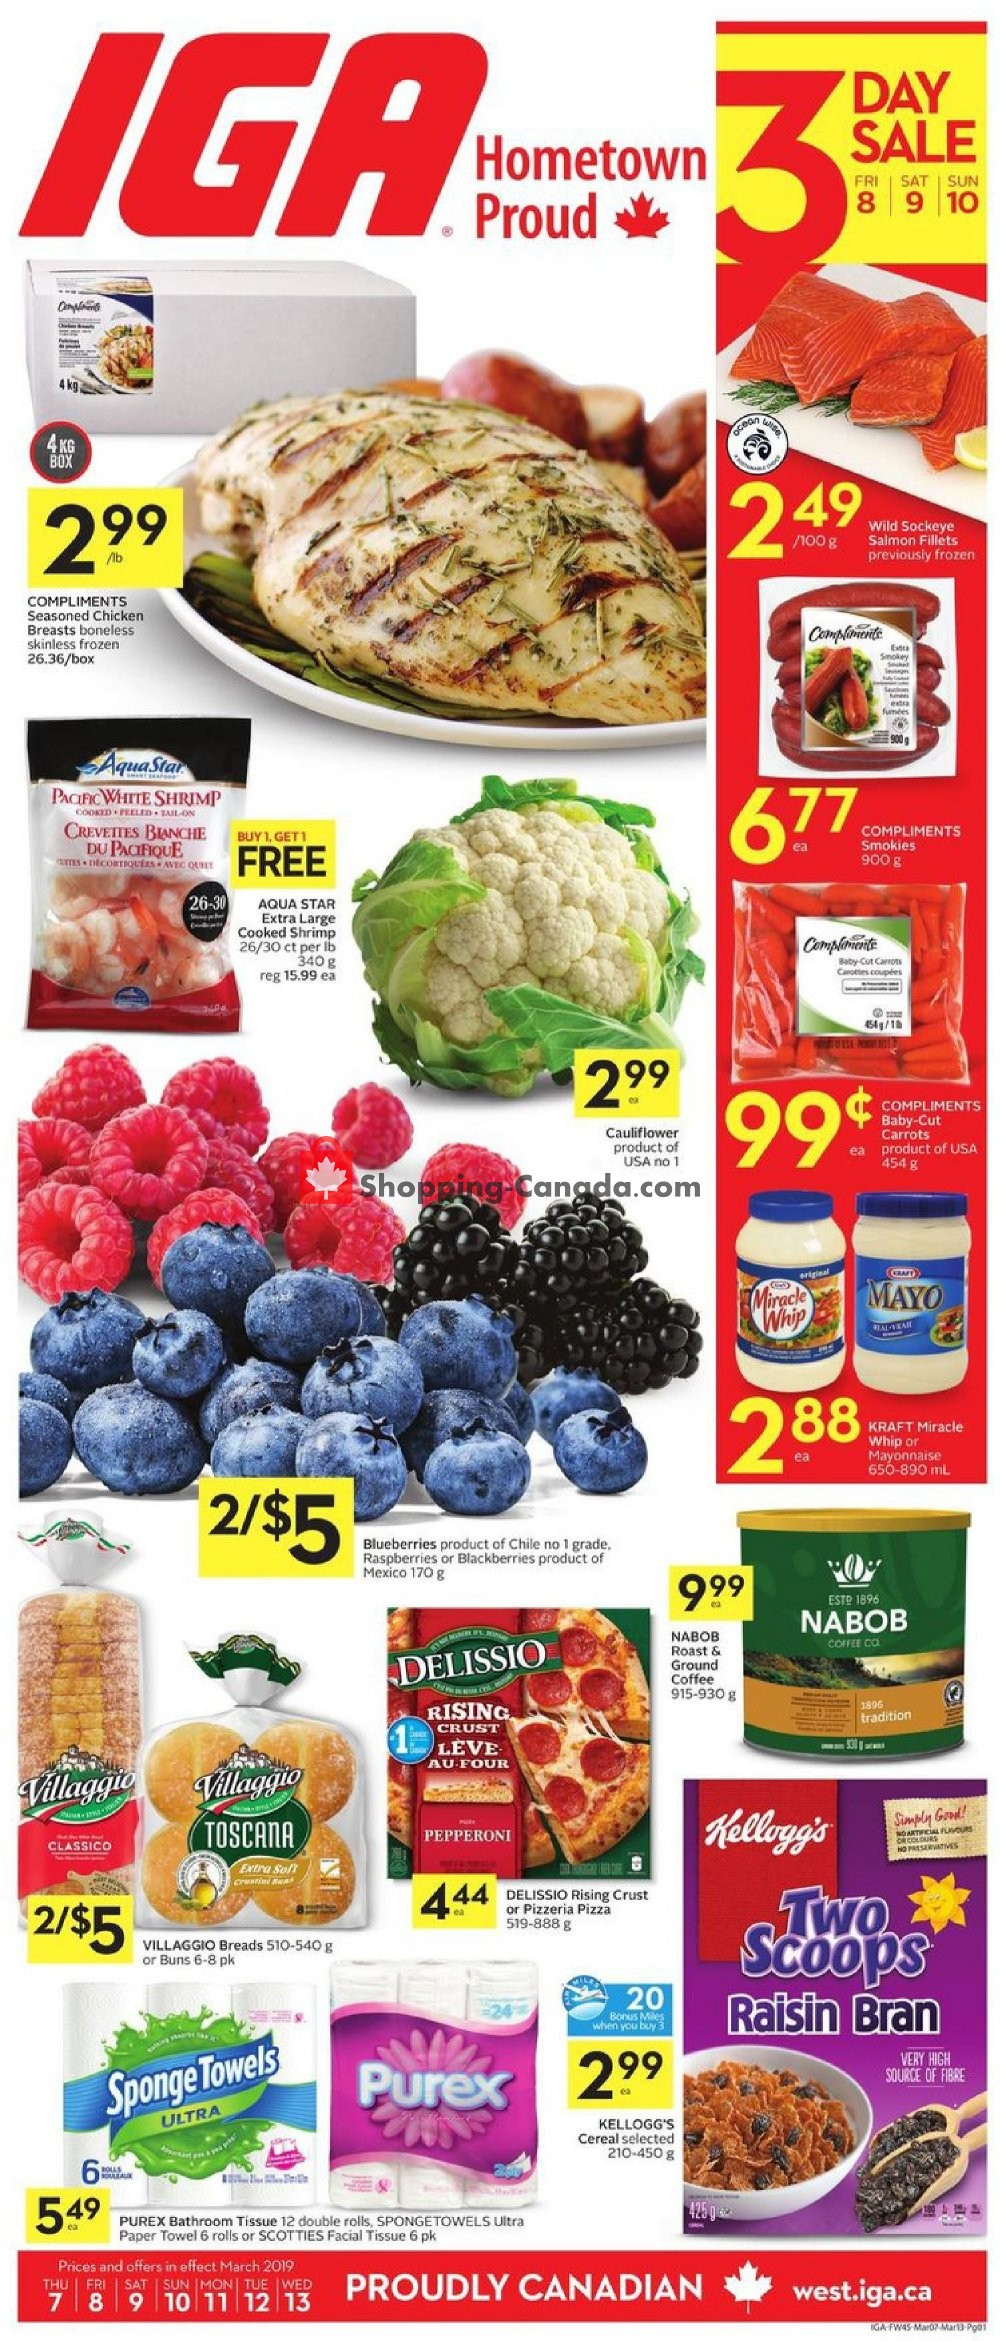 Flyer IGA Extra Canada - from Thursday March 7, 2019 to Wednesday March 13, 2019